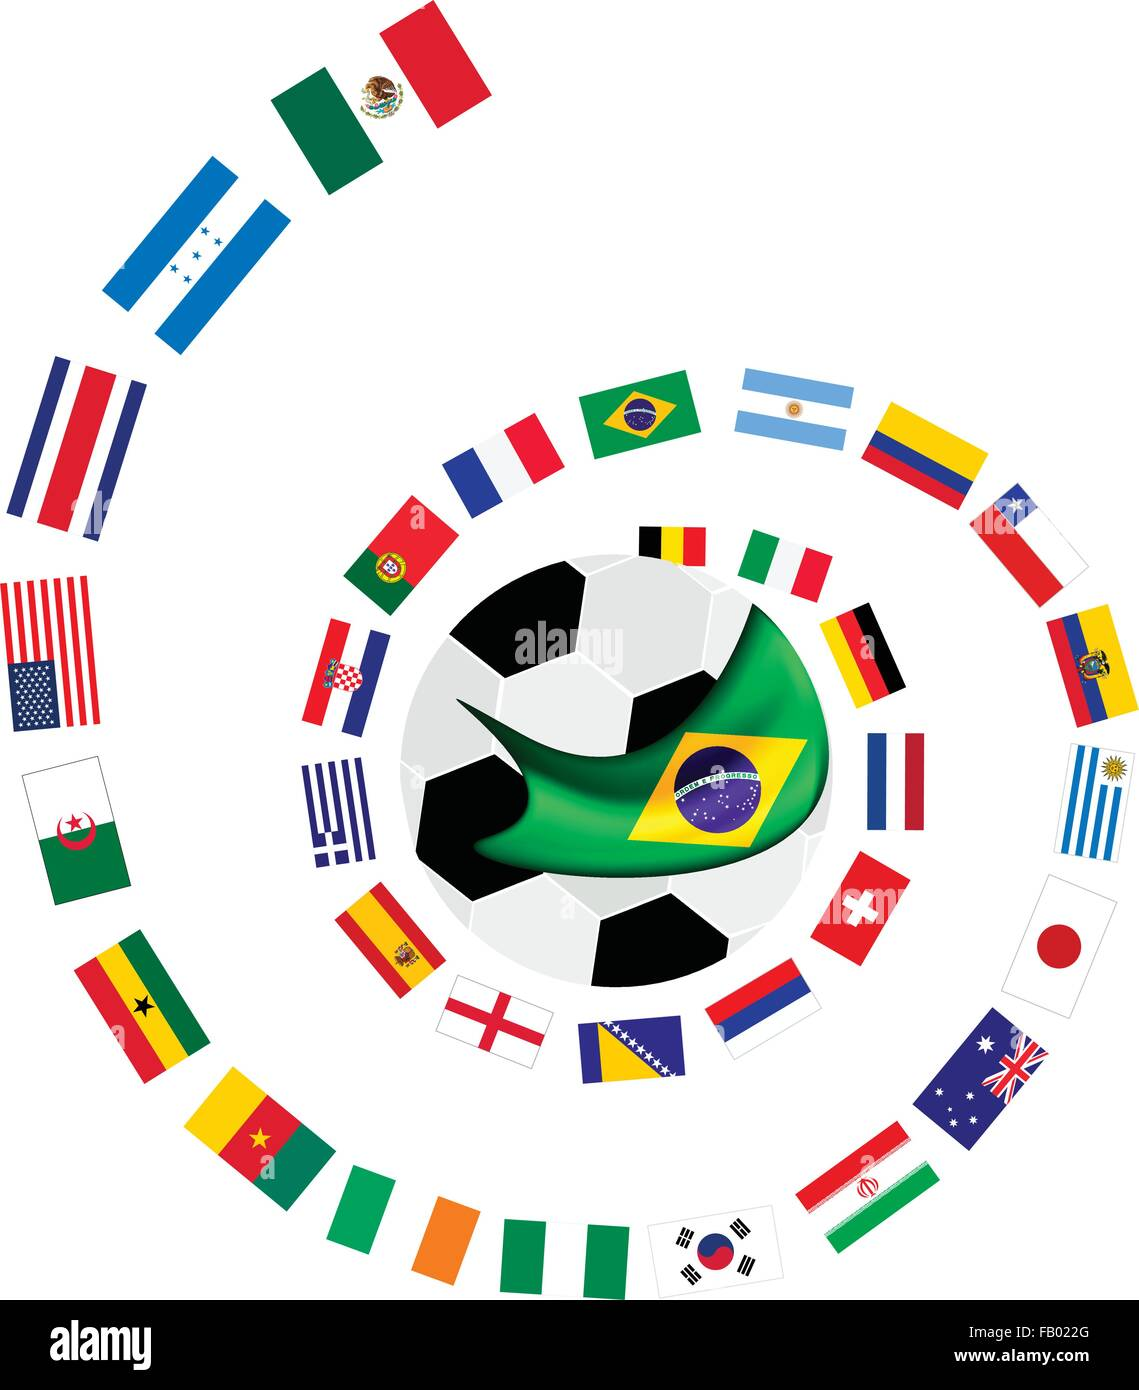 Brazil 2014, An Illustration of The Flags of 32 Countries Around A Soccer Ball of of Football World Cup in Brazil. Stock Vector